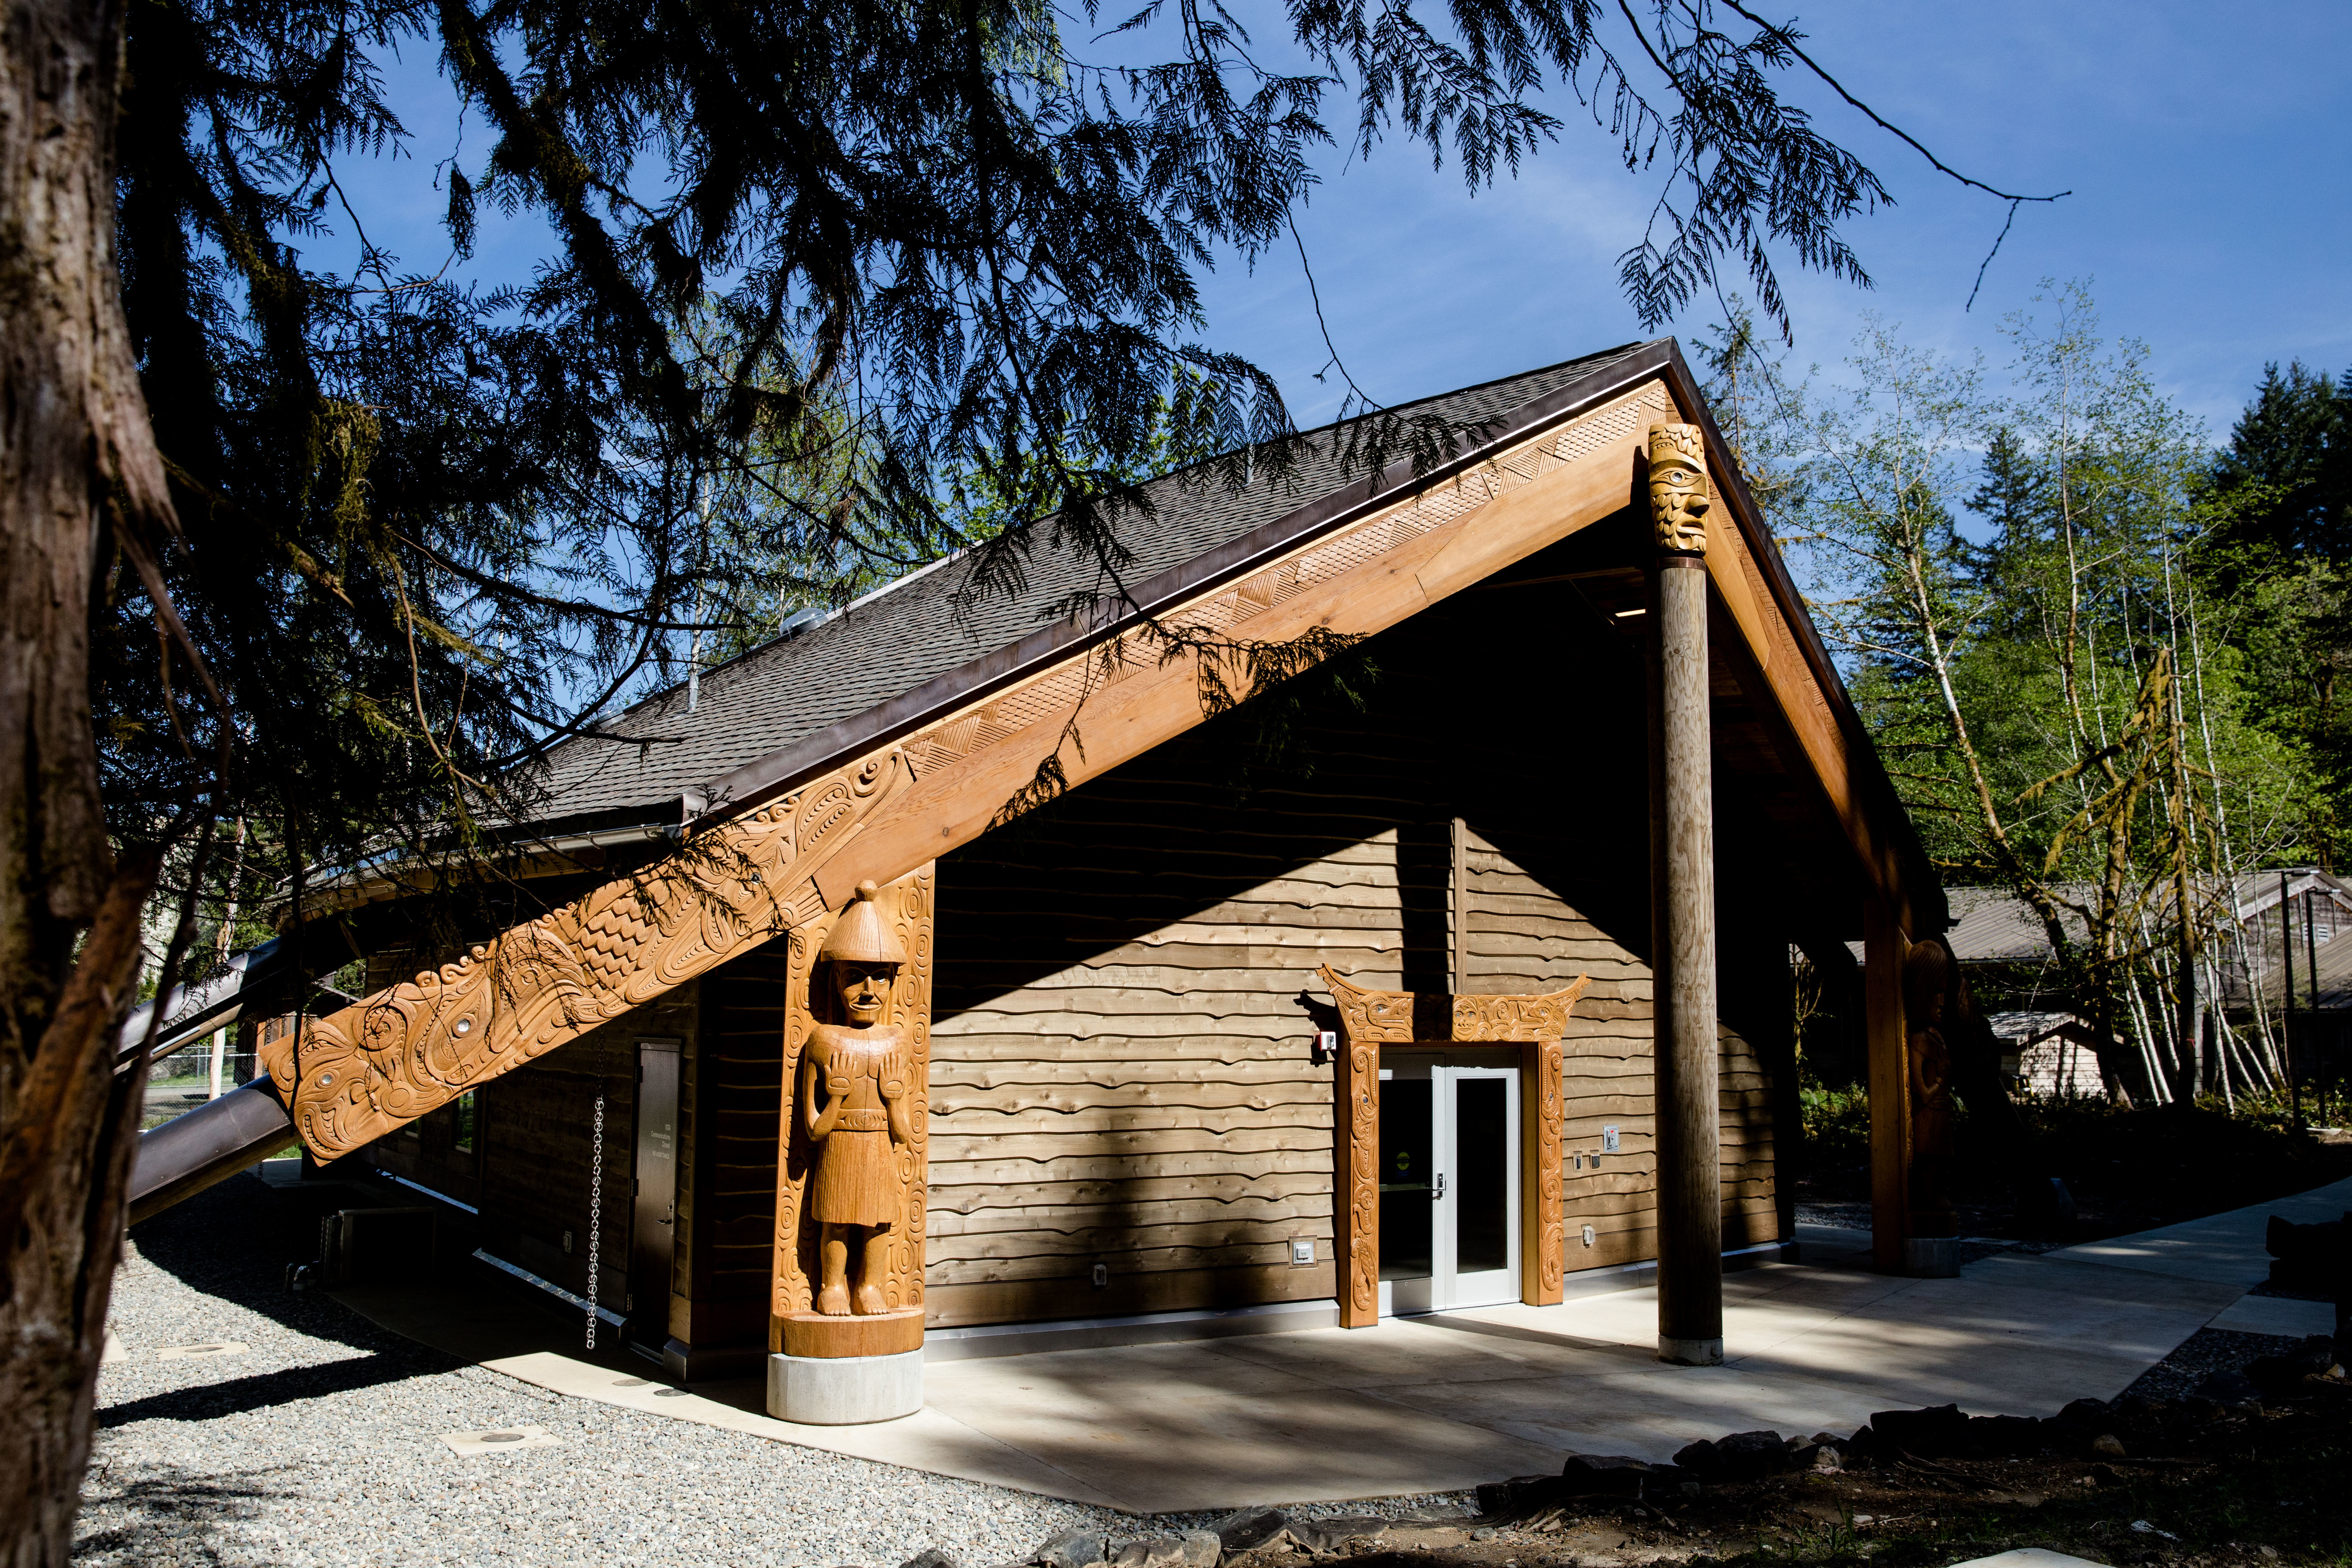 Exterior of the Longhouse Fiber Arts Studio